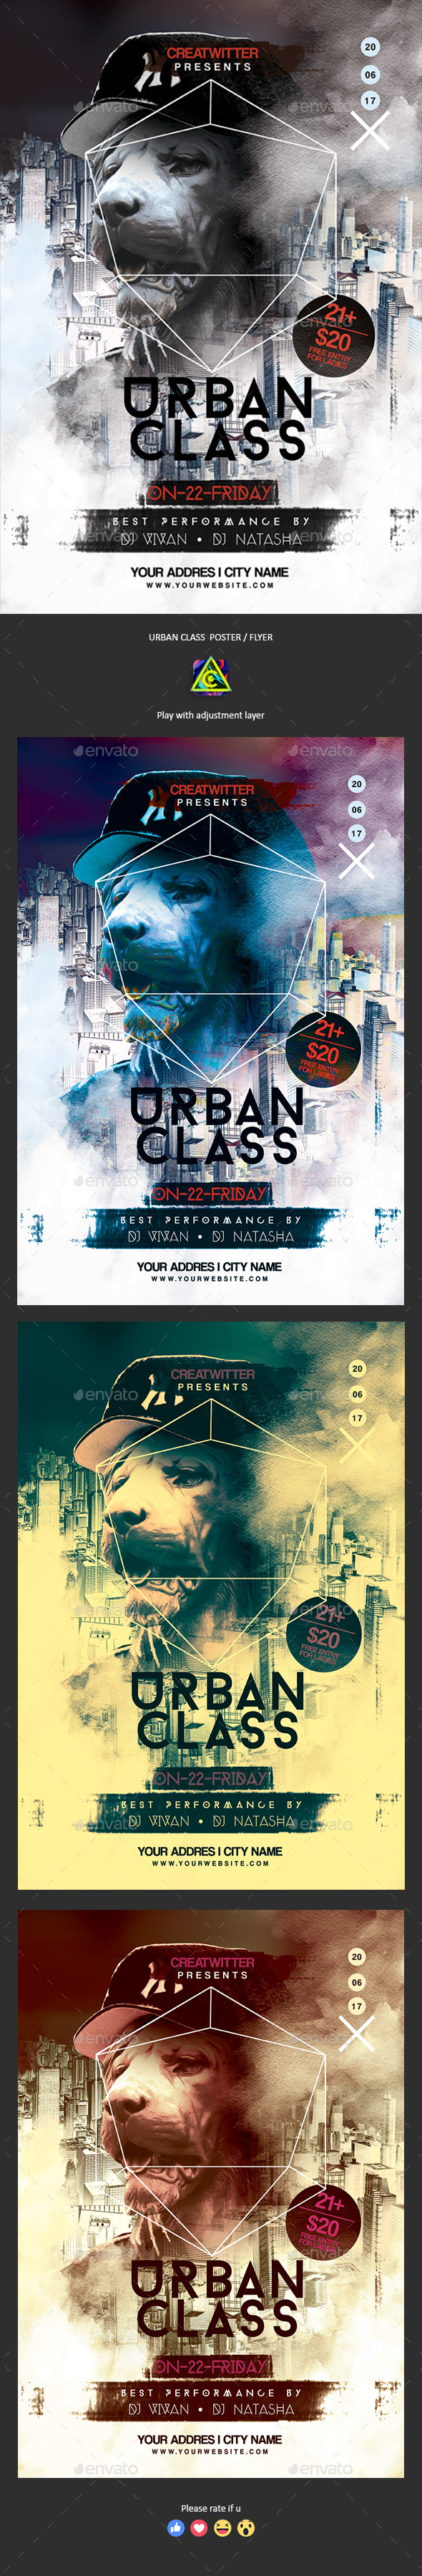 Urban Class Poster / Flyer - Clubs & Parties Events